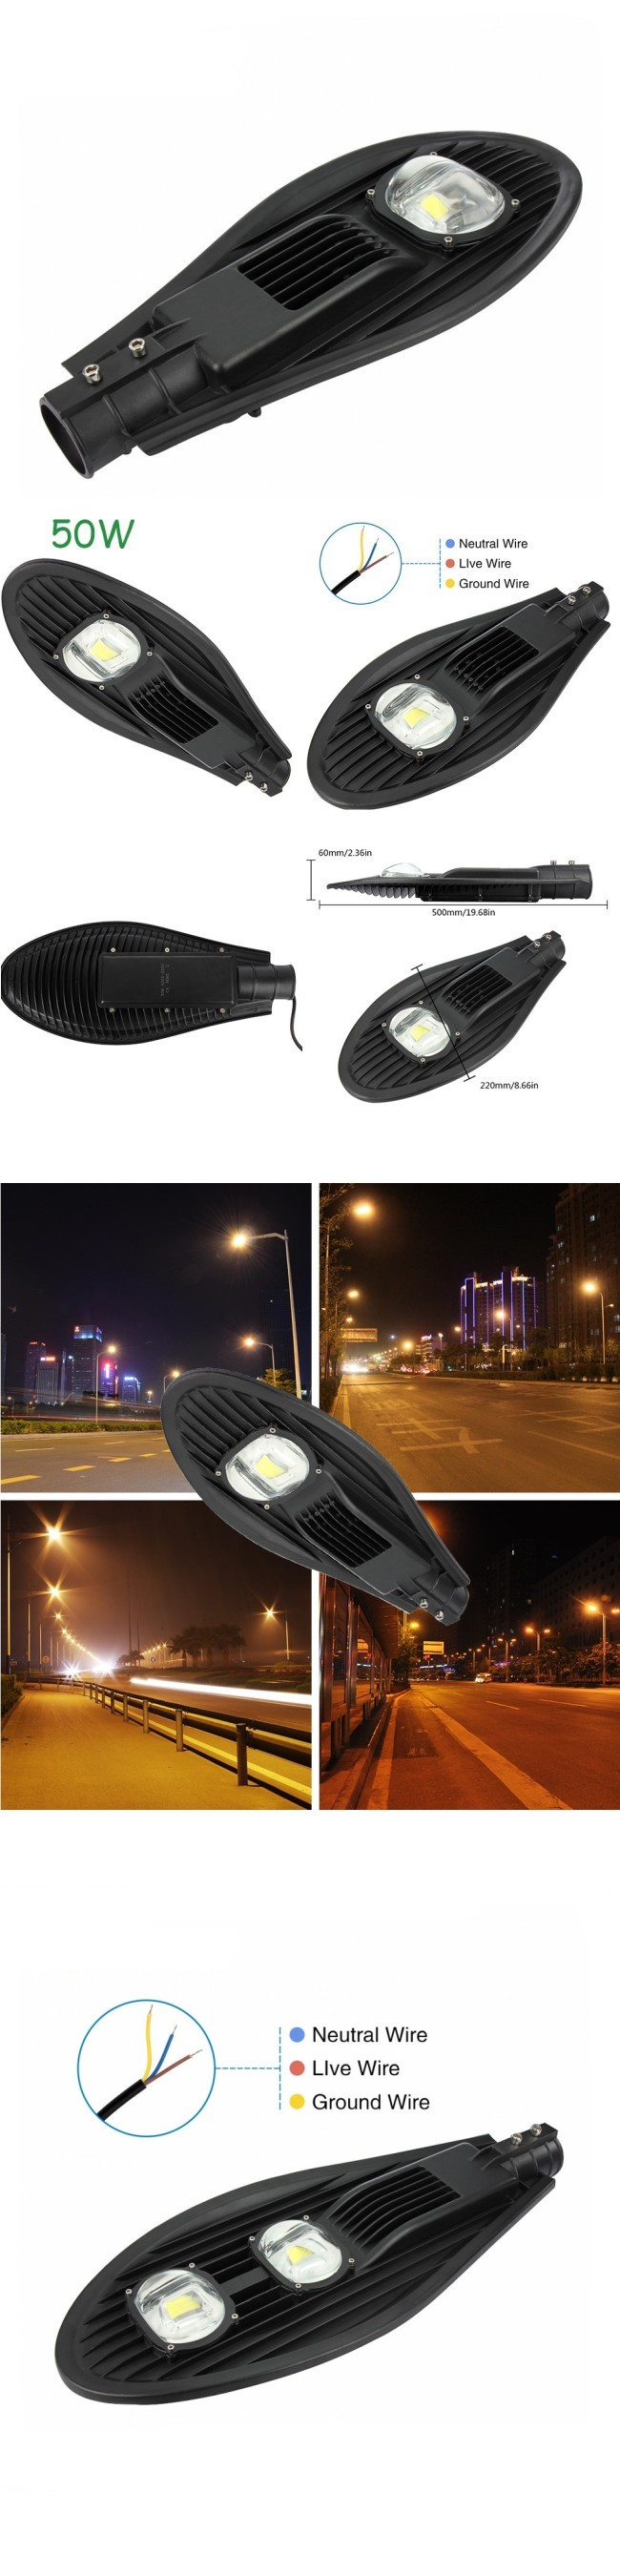 Outdoor Solar LED Street Light 20W Garden COB LED IP65